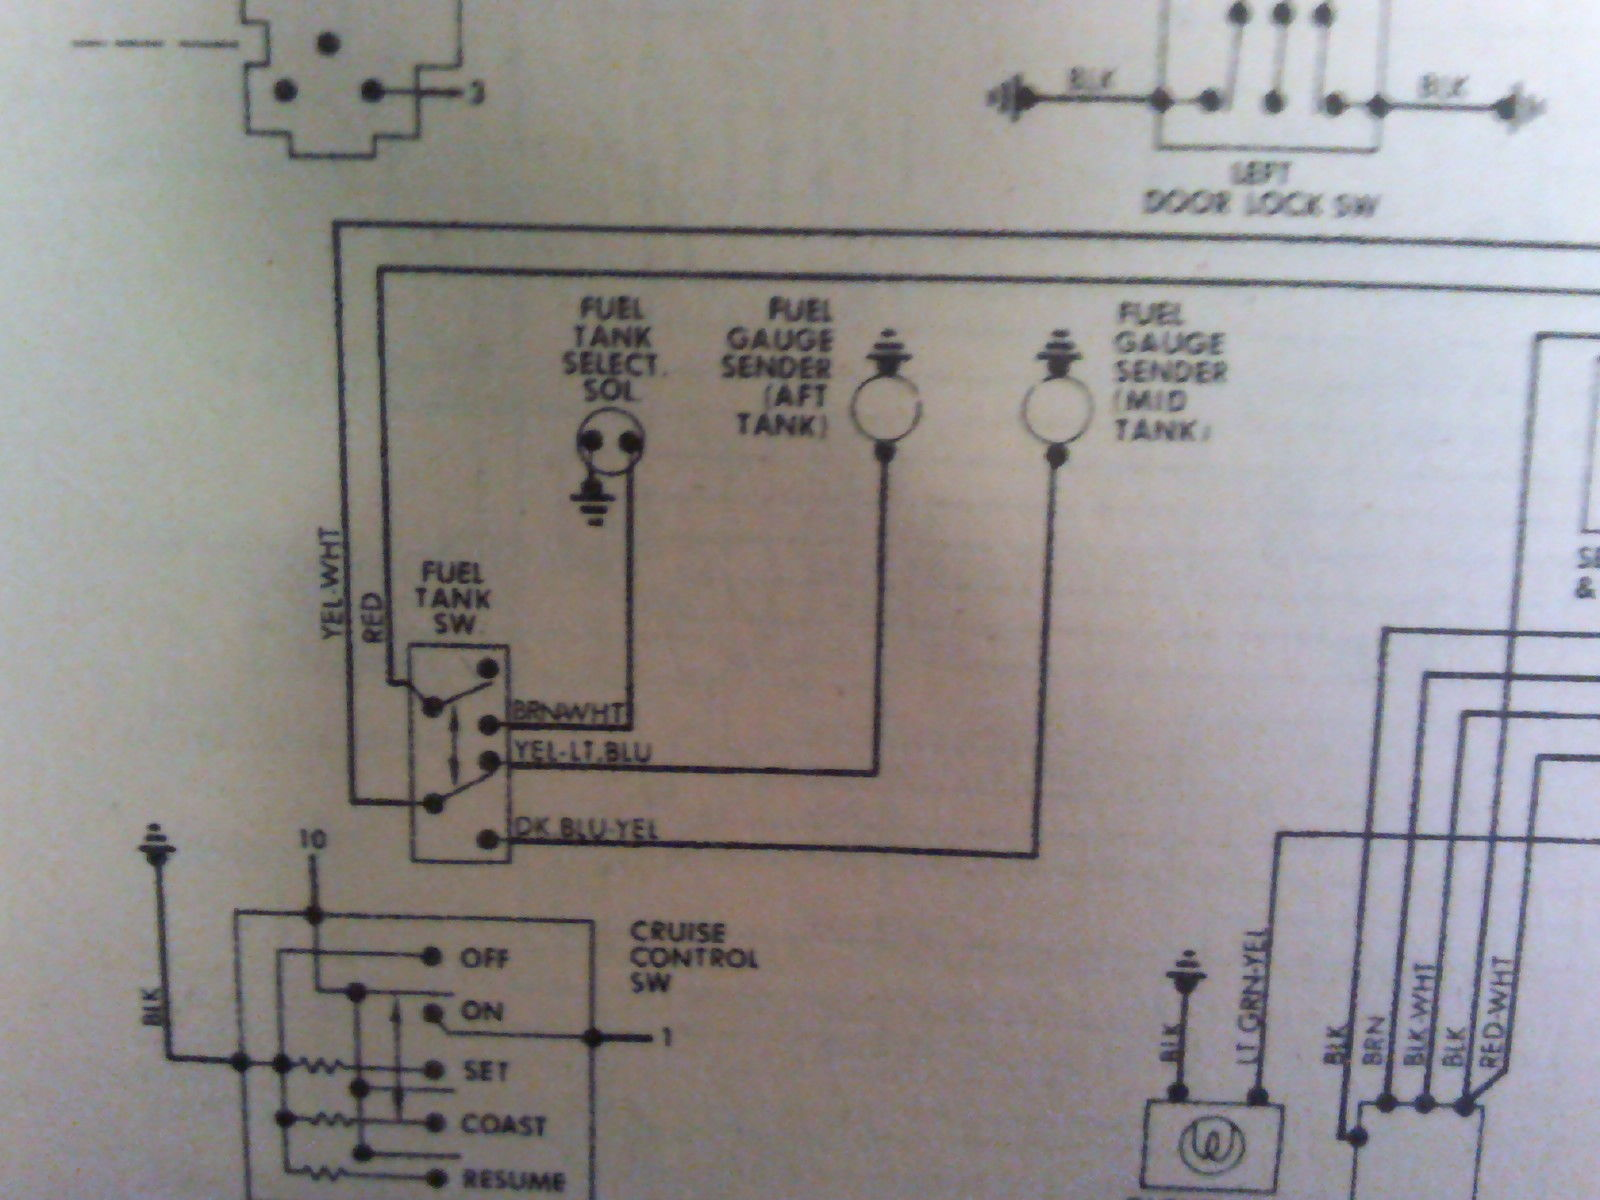 82 f150 dual tank wiring diagram? ford truck enthusiasts forums Dual Fuel Wiring Diagram this is what i got the yellow and white wire goes to the gauge on the dash, red is power when key is on dual fuel wiring diagram